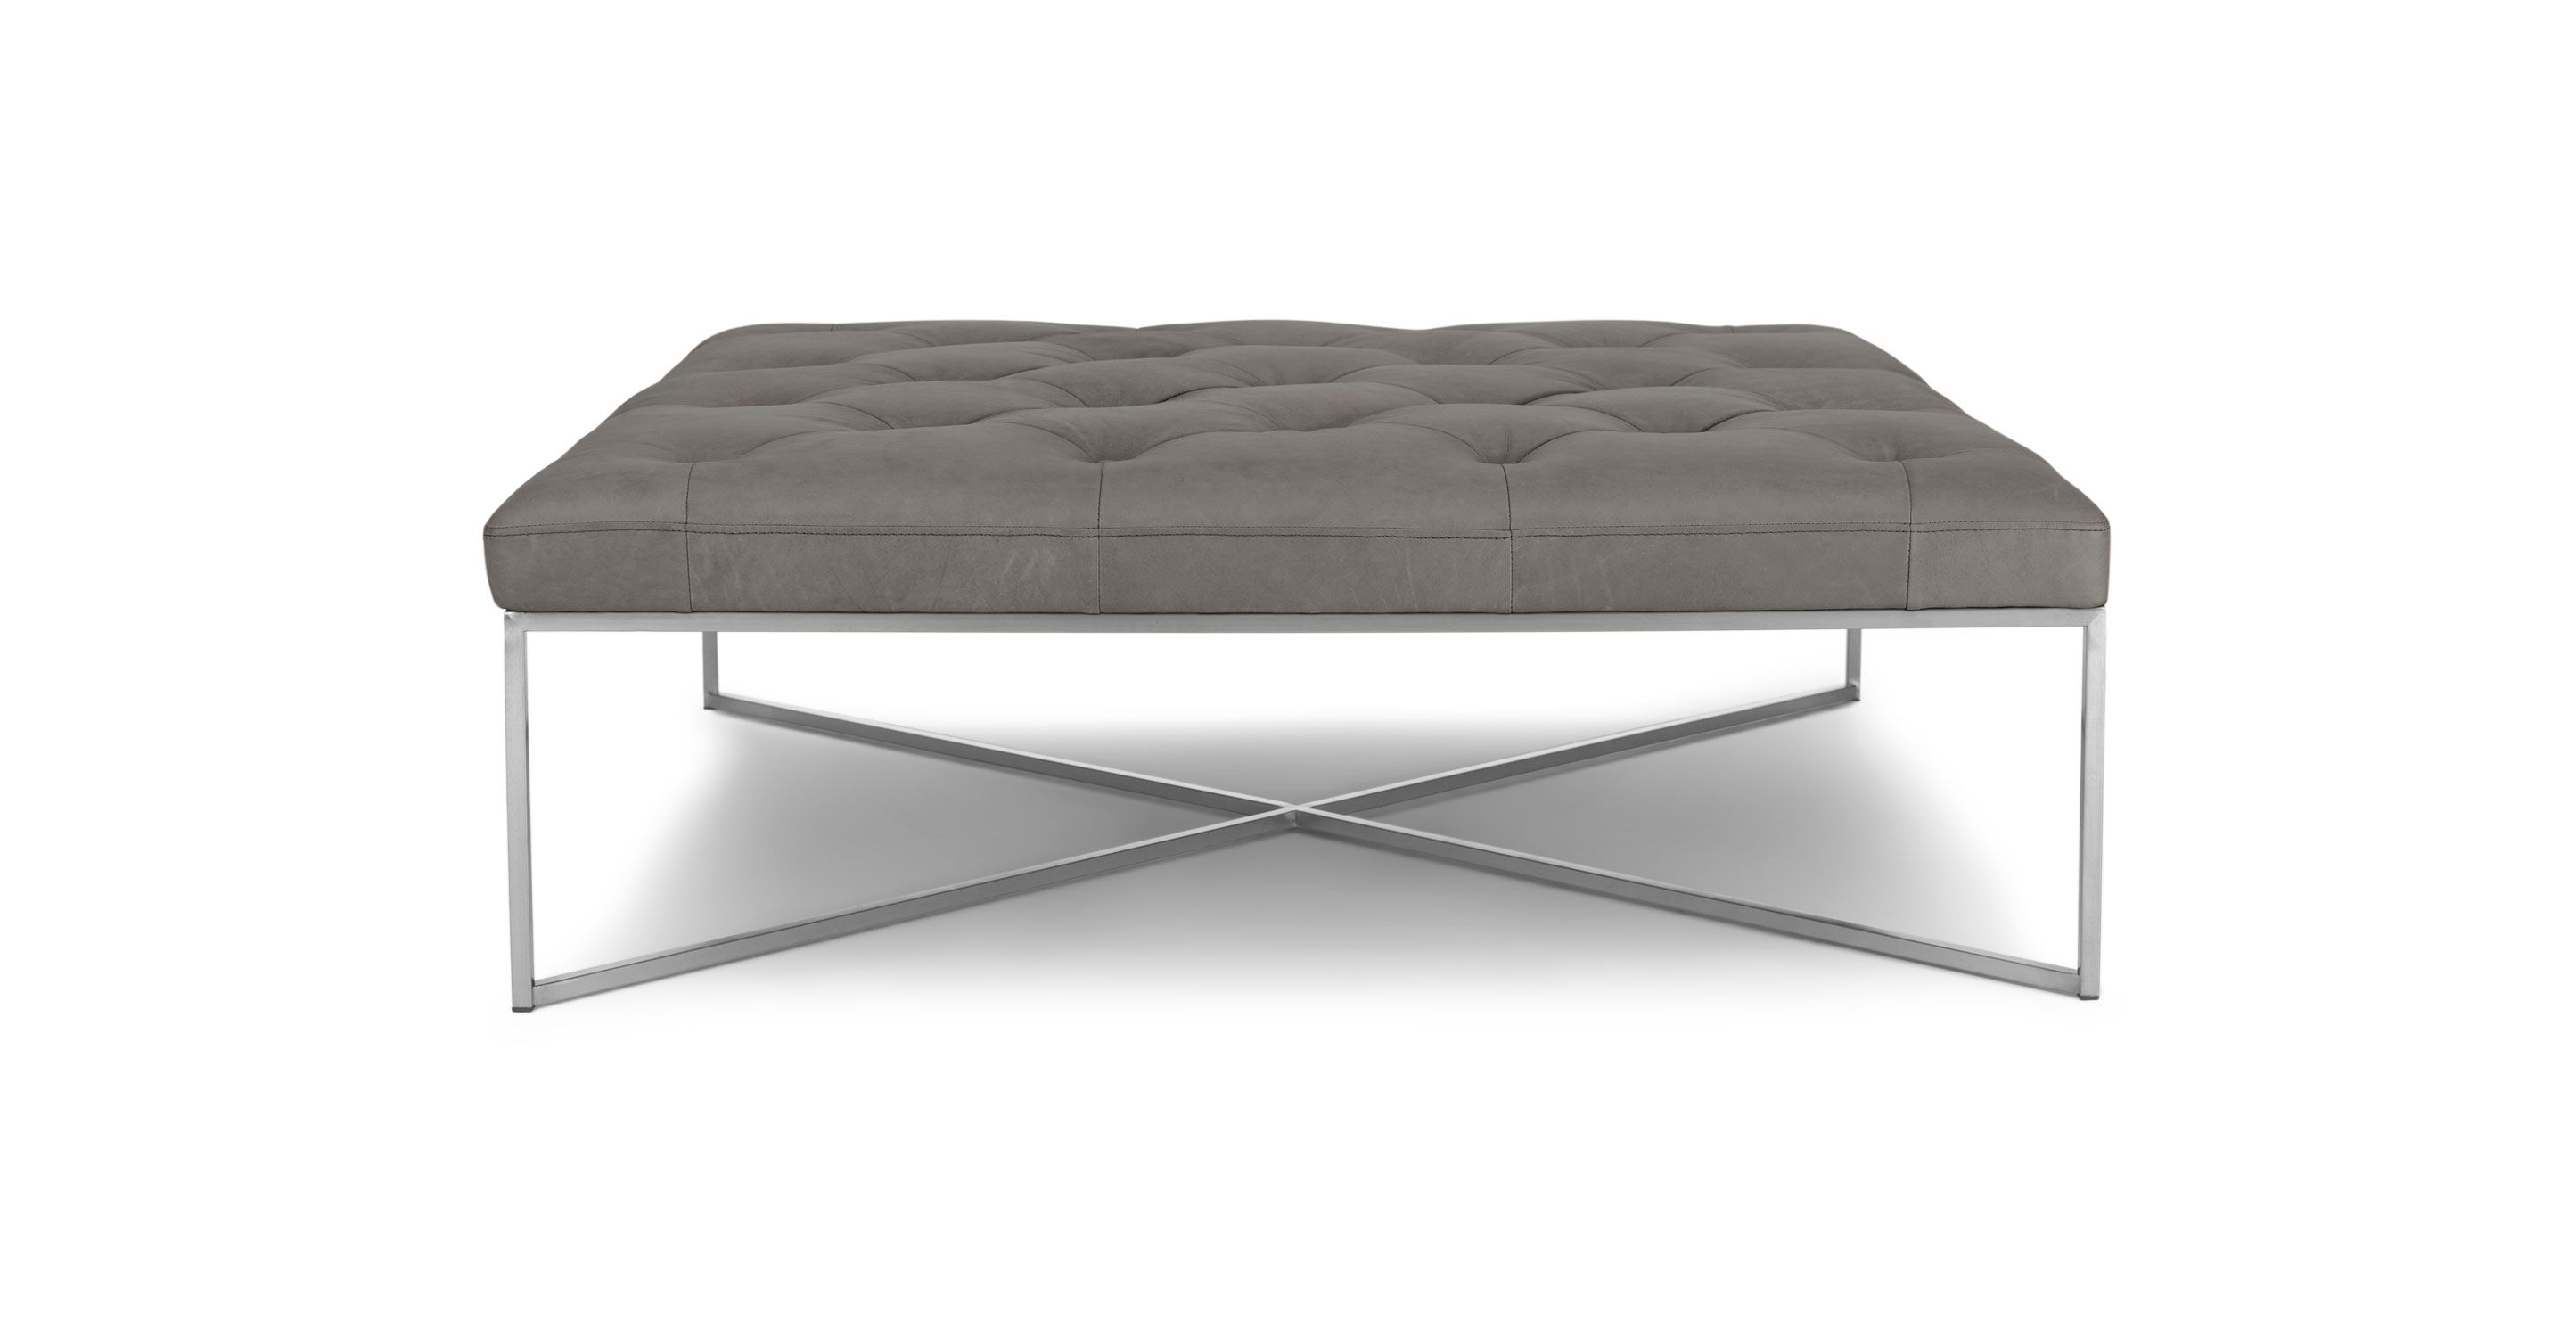 Tablet Lichen Gray Square Ottoman Ottomans Article Modern Mid Century And Scandinavian Furniture Leather Ottoman Coffee Table Leather Ottoman Ottoman [ 1500 x 2890 Pixel ]